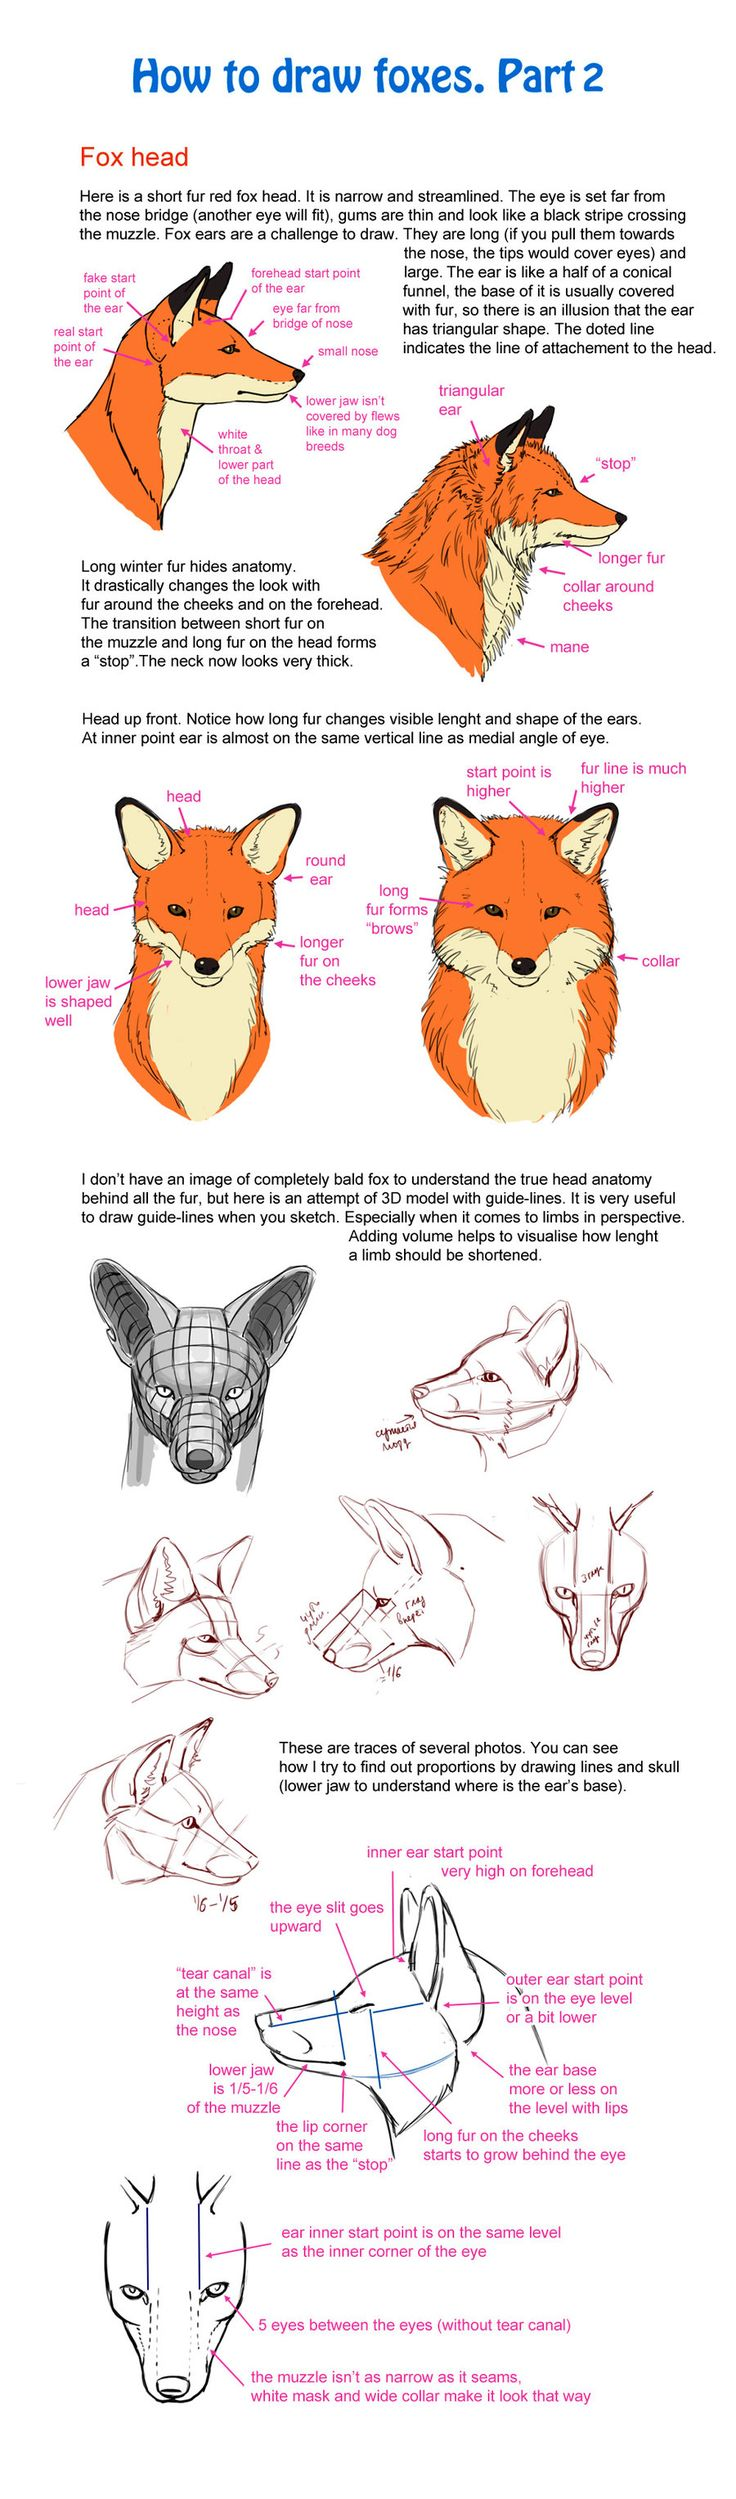 How To Draw Fox, Part 2 By Elruuiantart On @deviantart